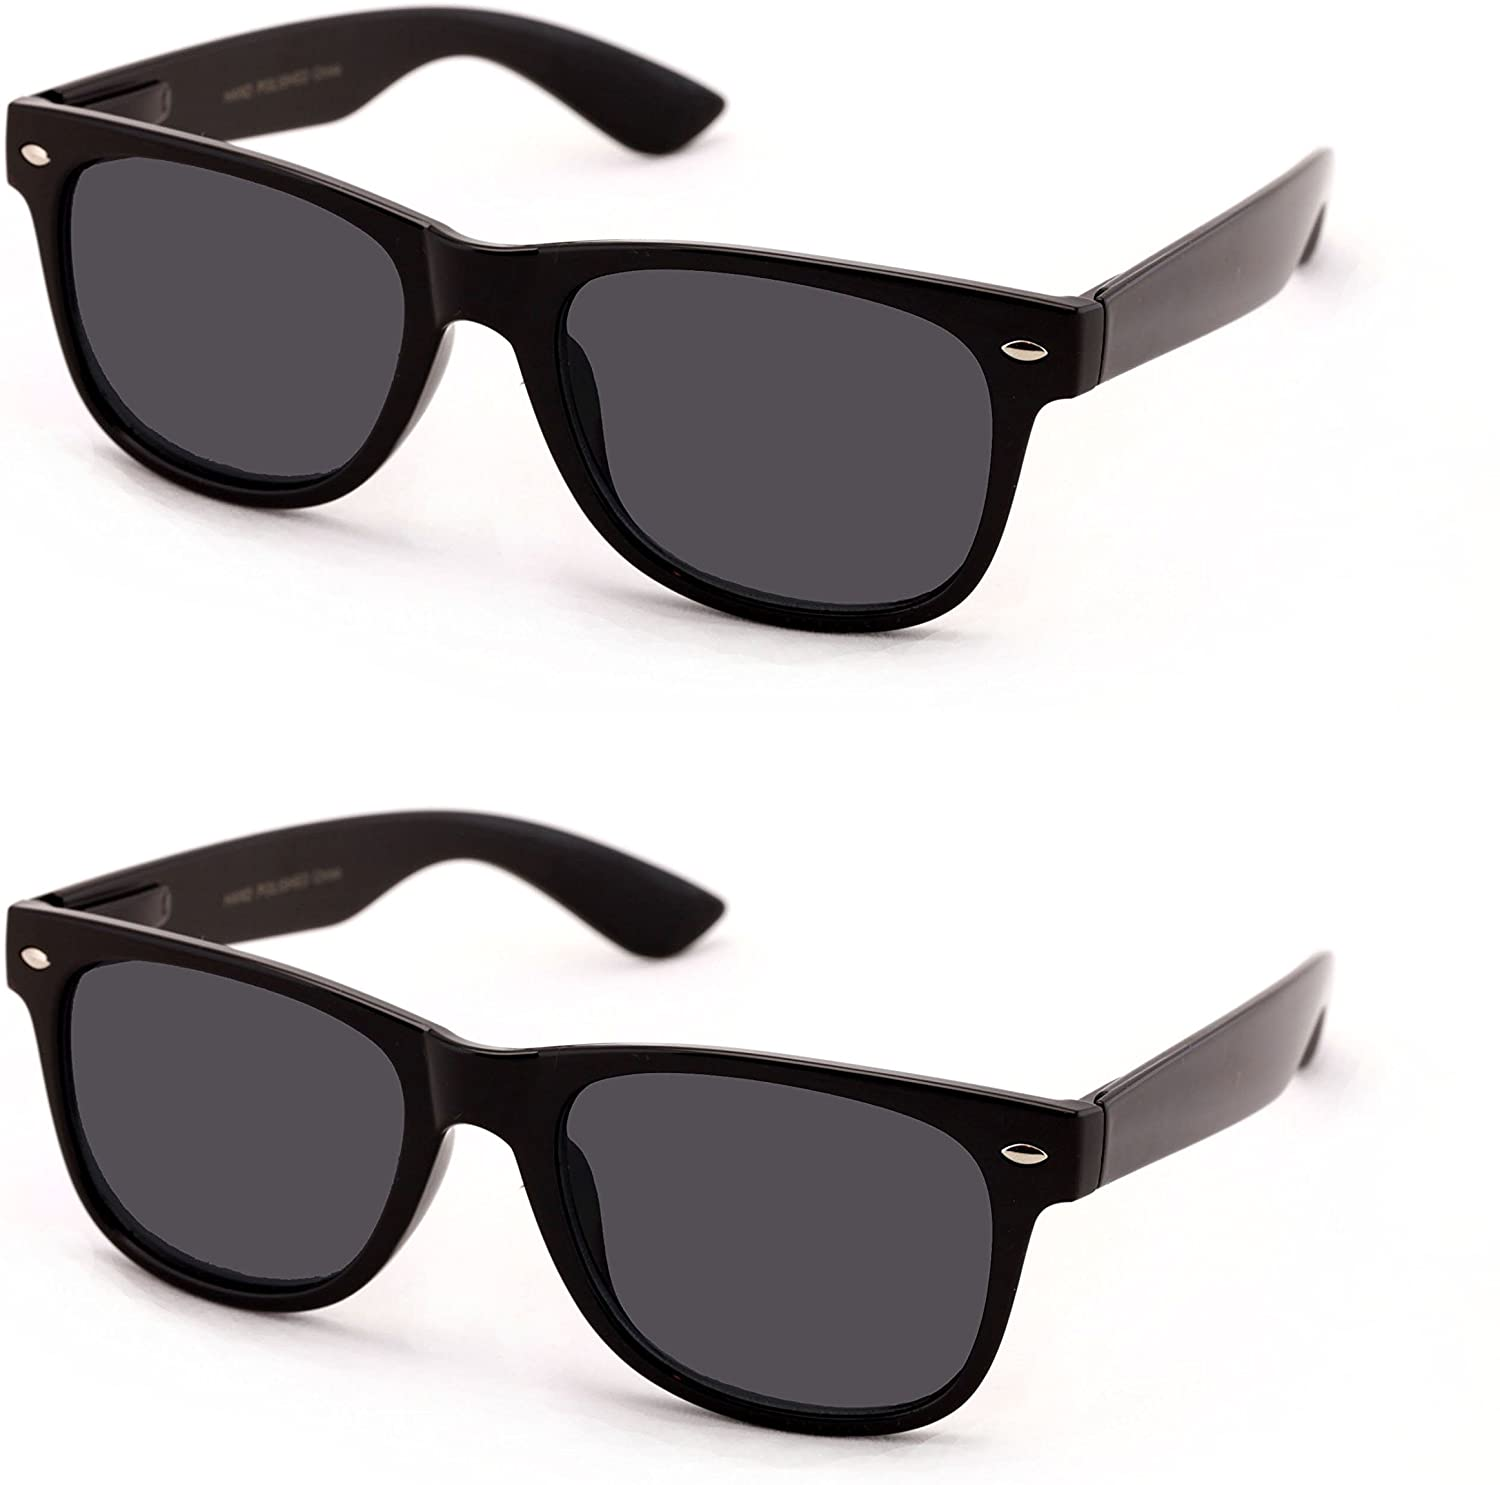 V.W.E Classic Outdoor Reading Sunglasses - Comfortable Stylish Simple Readers Magnification - Not Bifocal